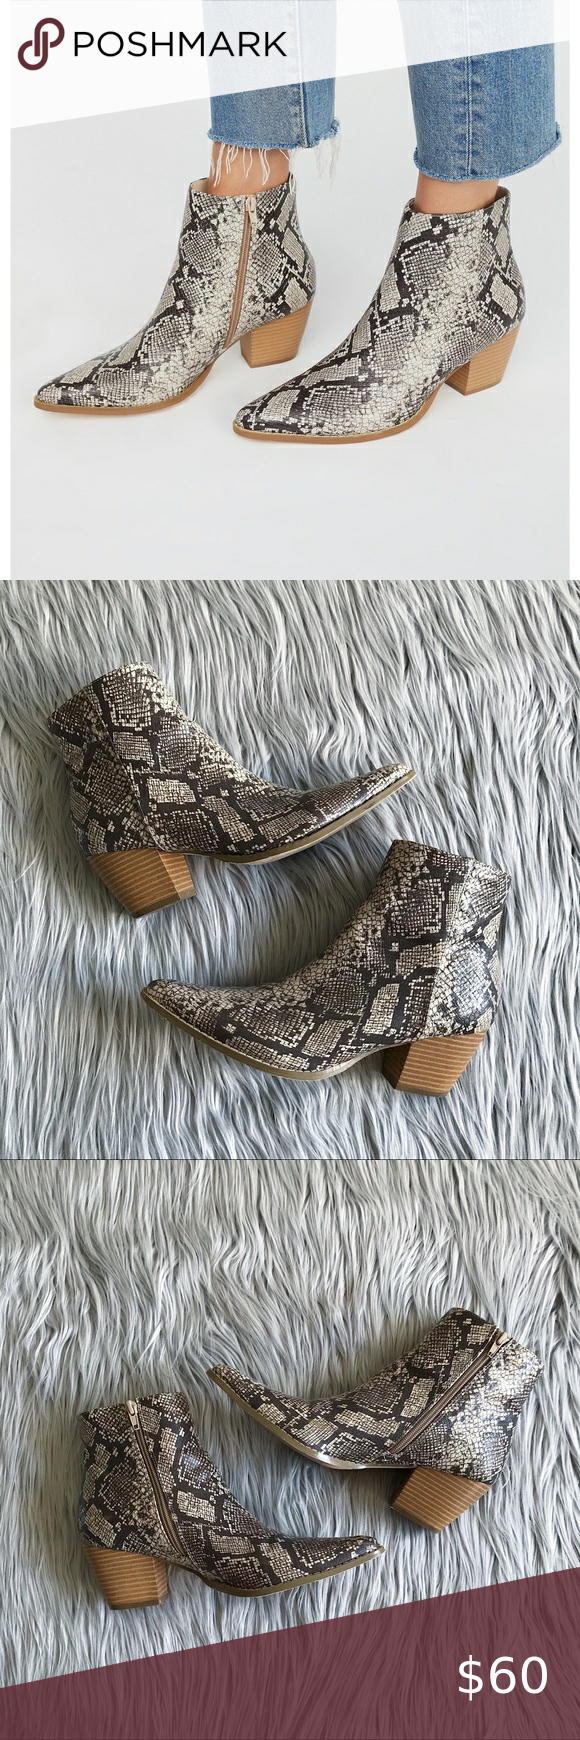 FREE PEOPLE Going West Snake Print Booties – Sz 9 Textured vegan leather ankle b…